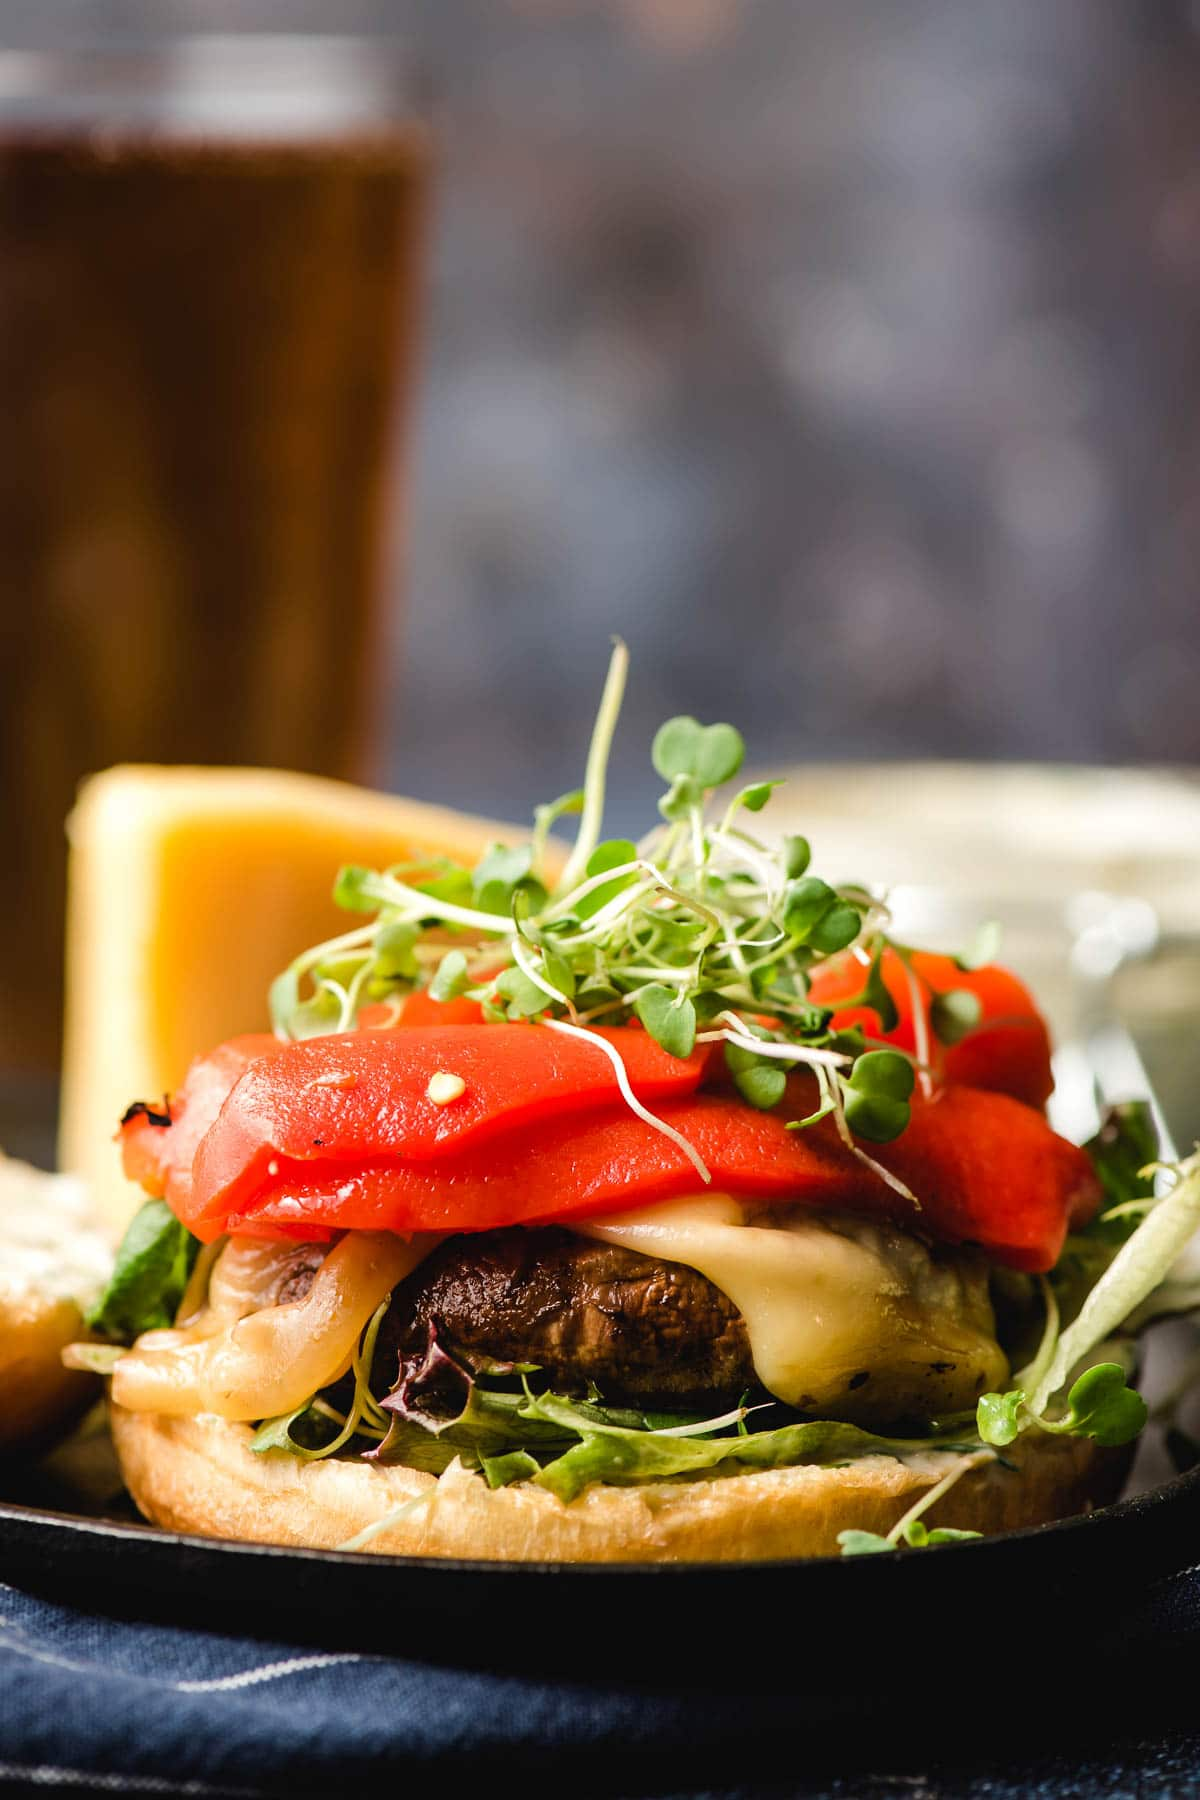 Sandwich stacked with a marinated portobello mushroom, red pepper slices, and microgreens.